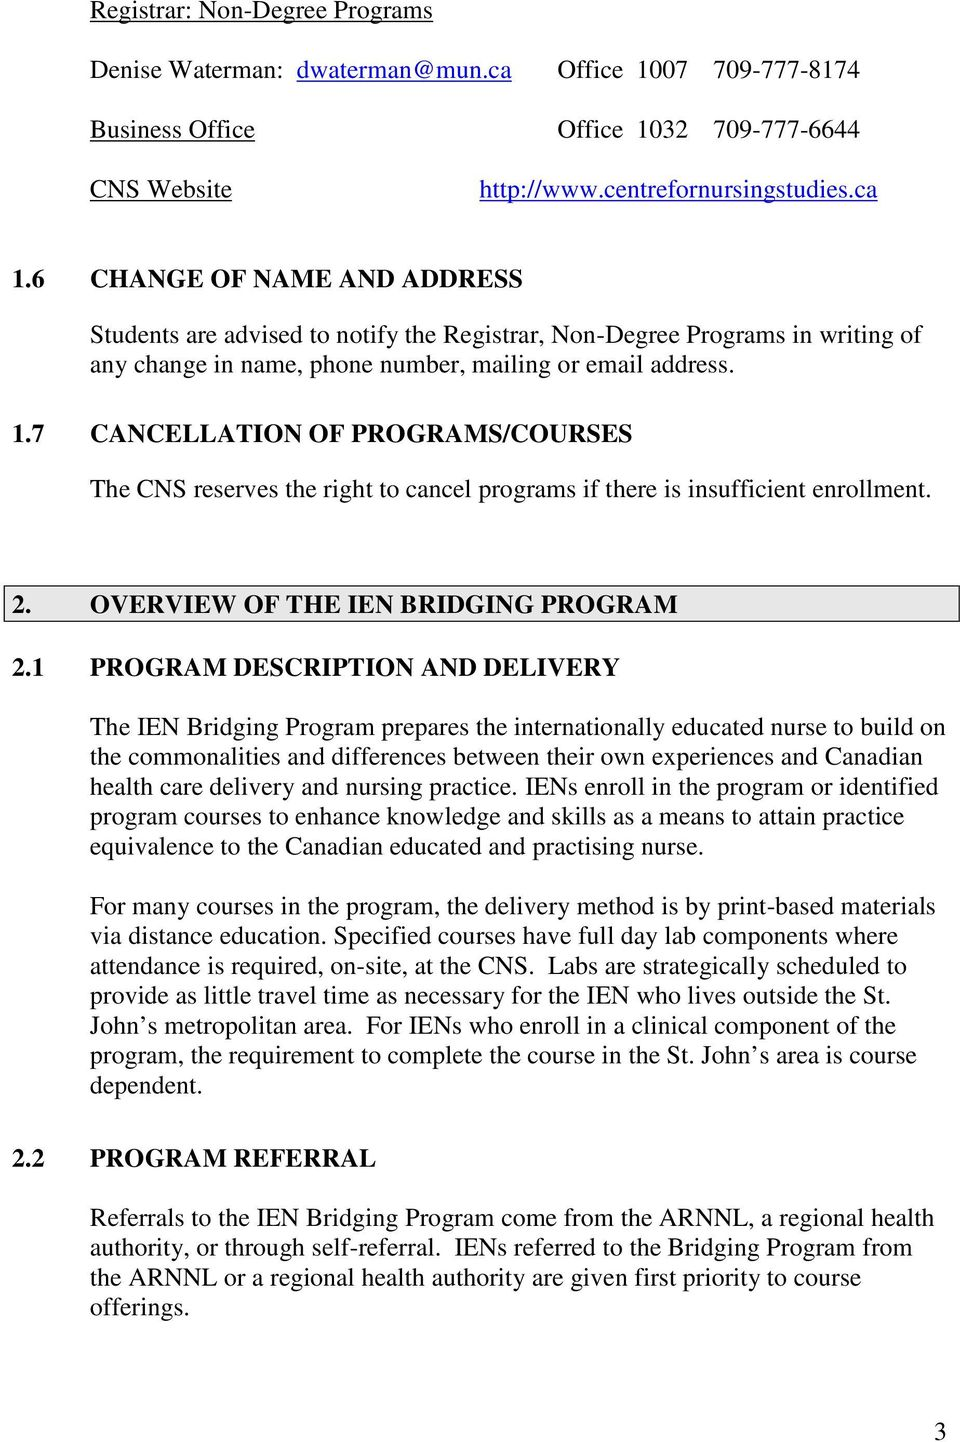 7 CANCELLATION OF PROGRAMS/COURSES The CNS reserves the right to cancel programs if there is insufficient enrollment. 2. OVERVIEW OF THE IEN BRIDGING PROGRAM 2.